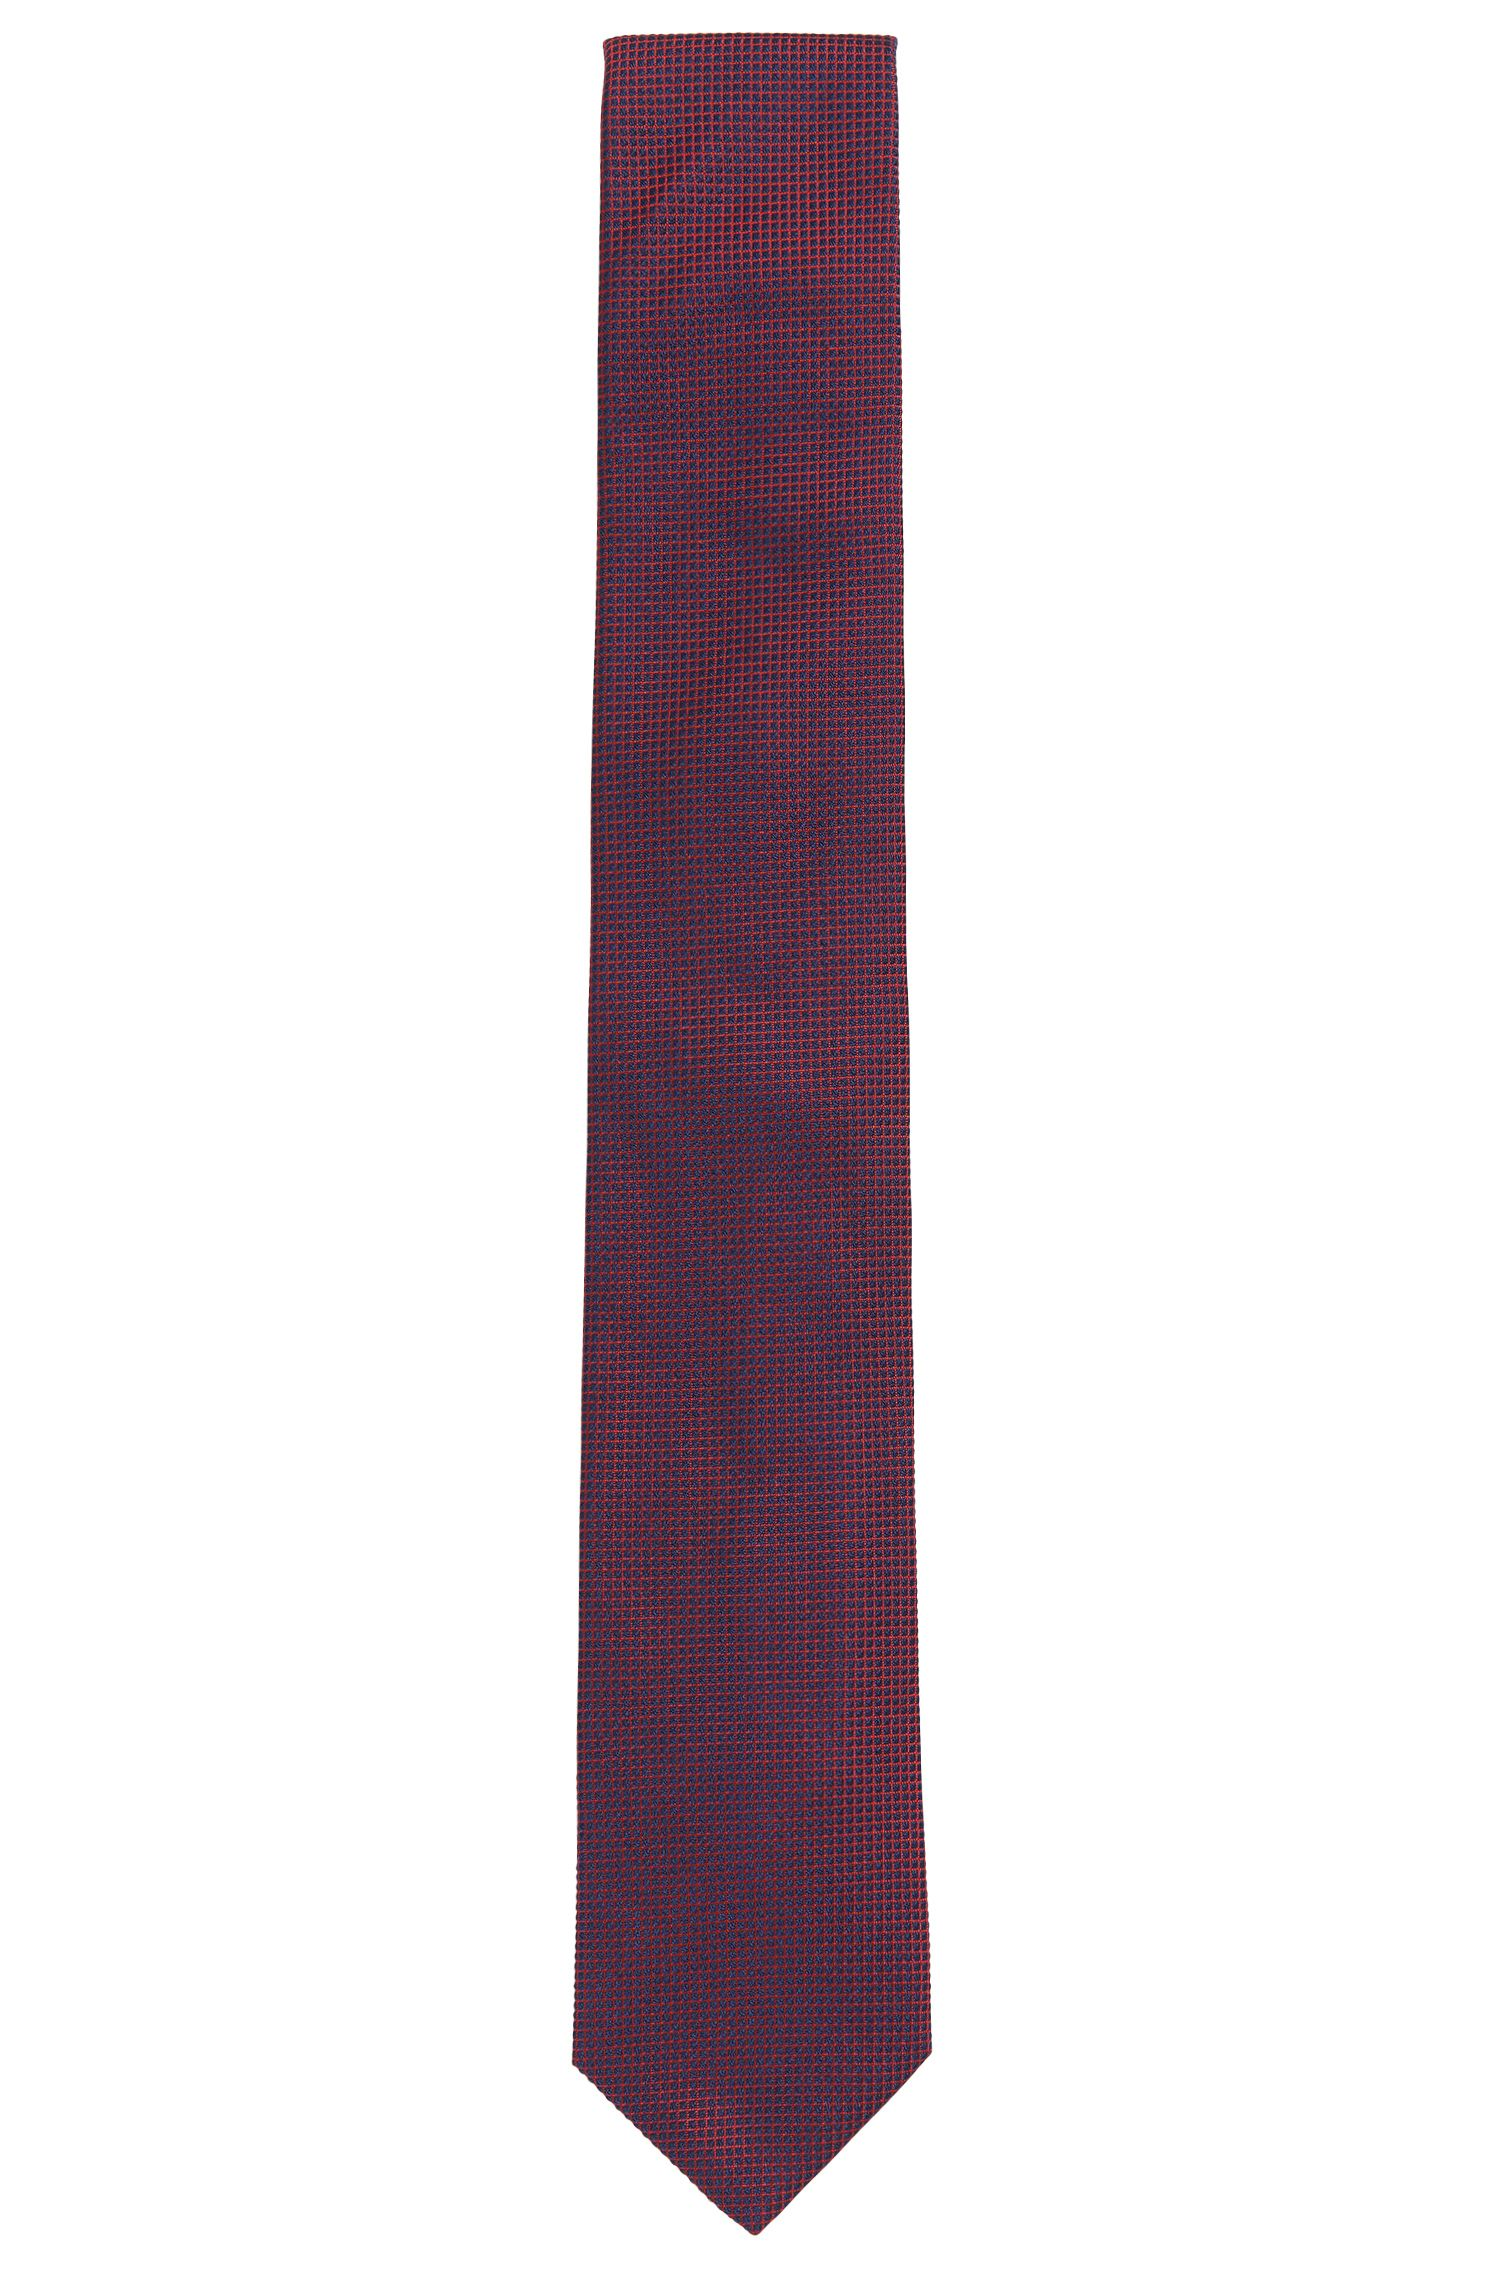 Silk jacquard tie in contrast graph pattern